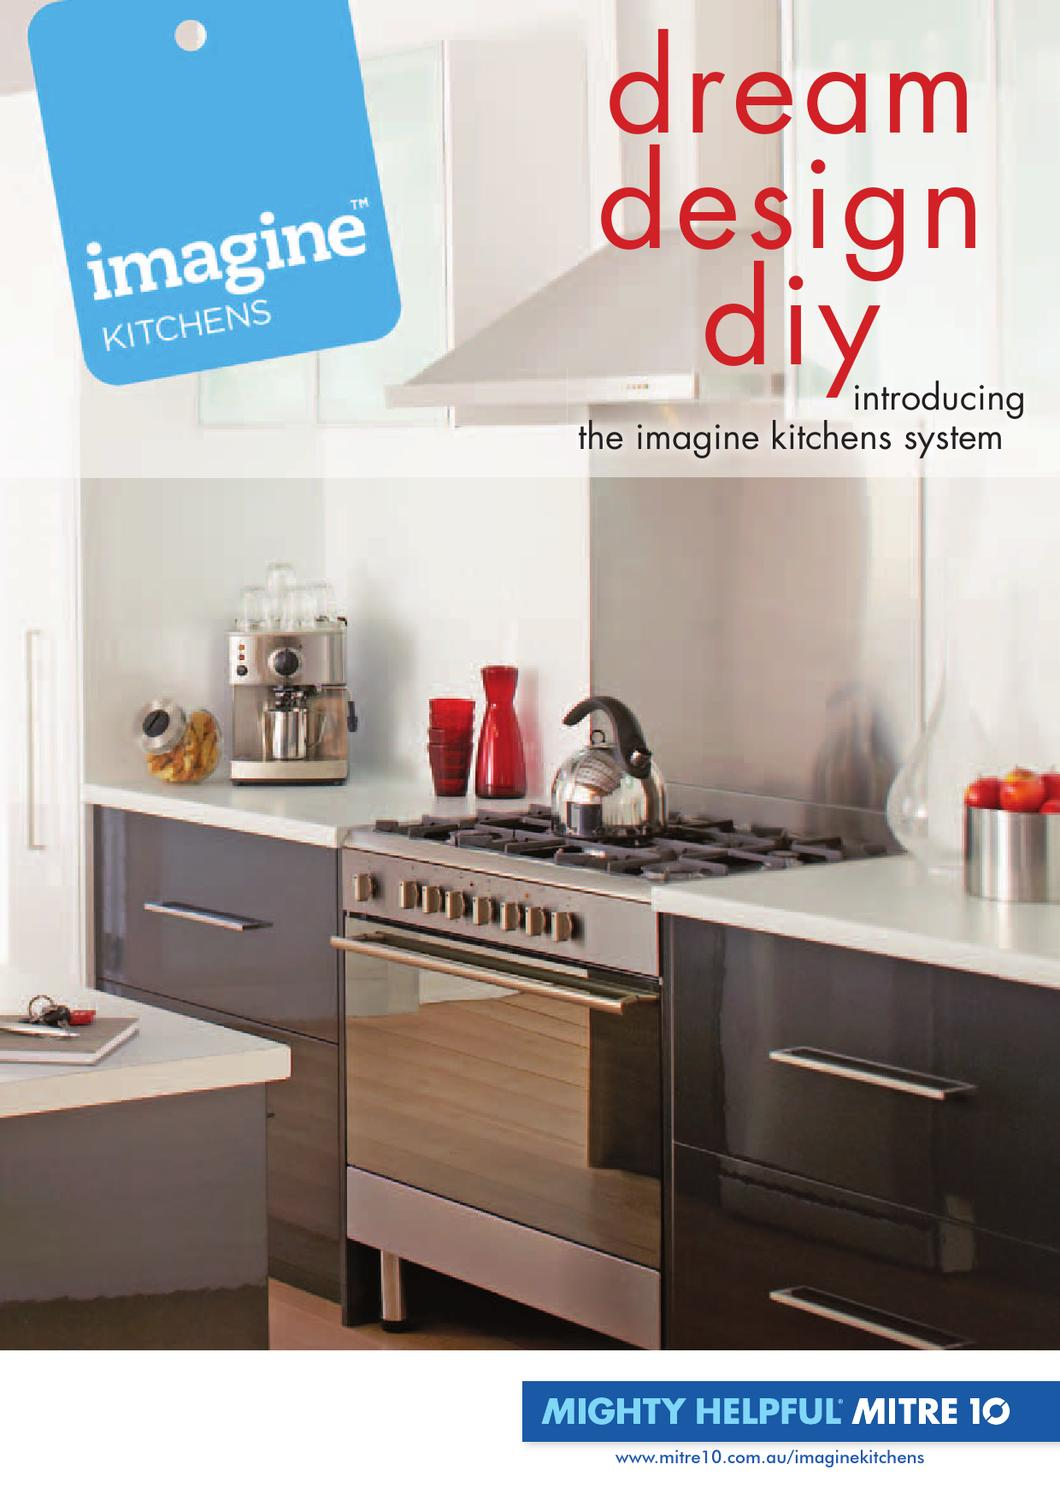 imagine™ kitchens cataloguesunlite mitre 10 - issuu